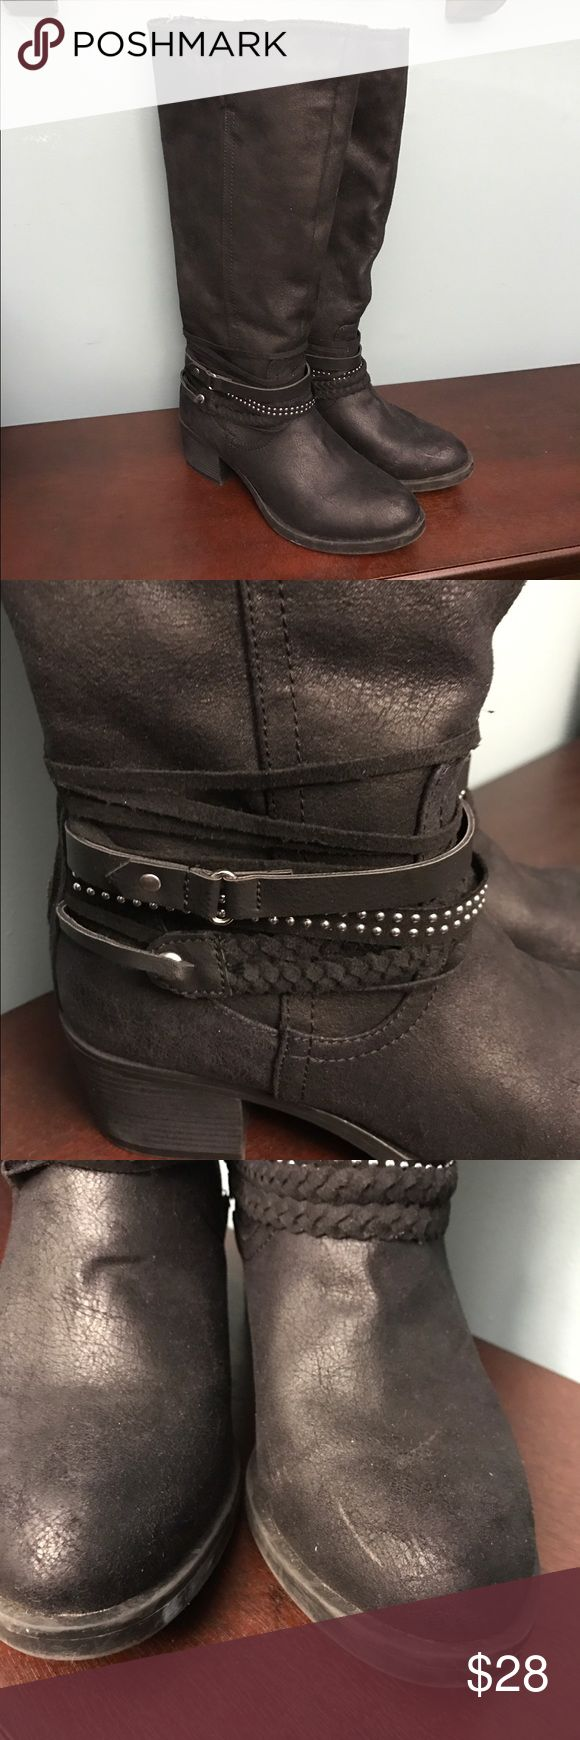 SO boots Khols Brand boots. Man made materials with cool detailed straps. Worn once, pic 3 shoes a superficial scuff on boot to right. Very clean almost like new.💥💥SALE 💥💥💥 SO by khols Shoes Winter & Rain Boots